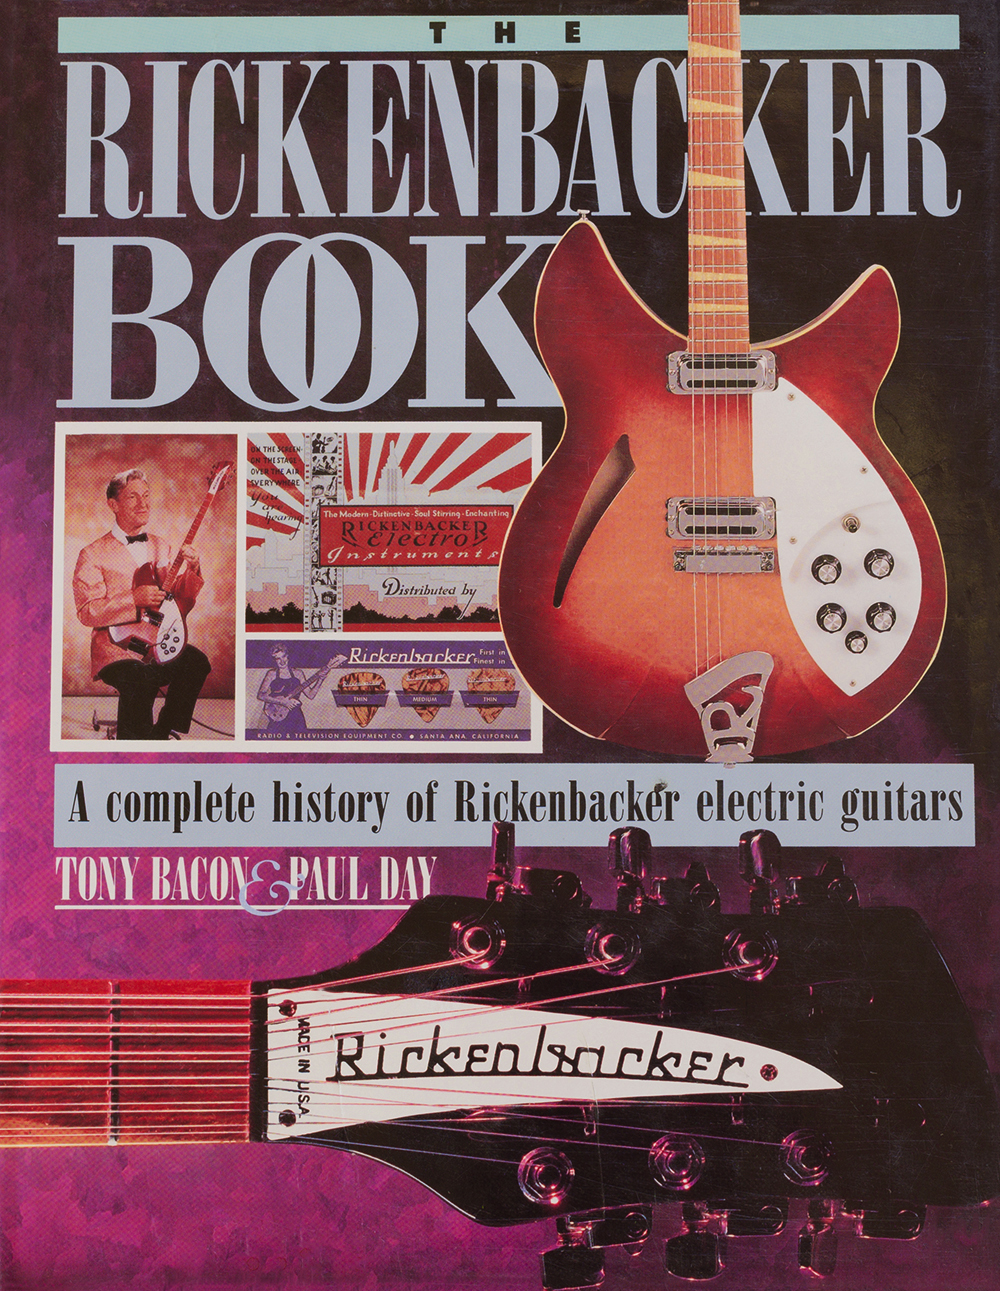 the rickenbacker book, by tony bacon, paul day